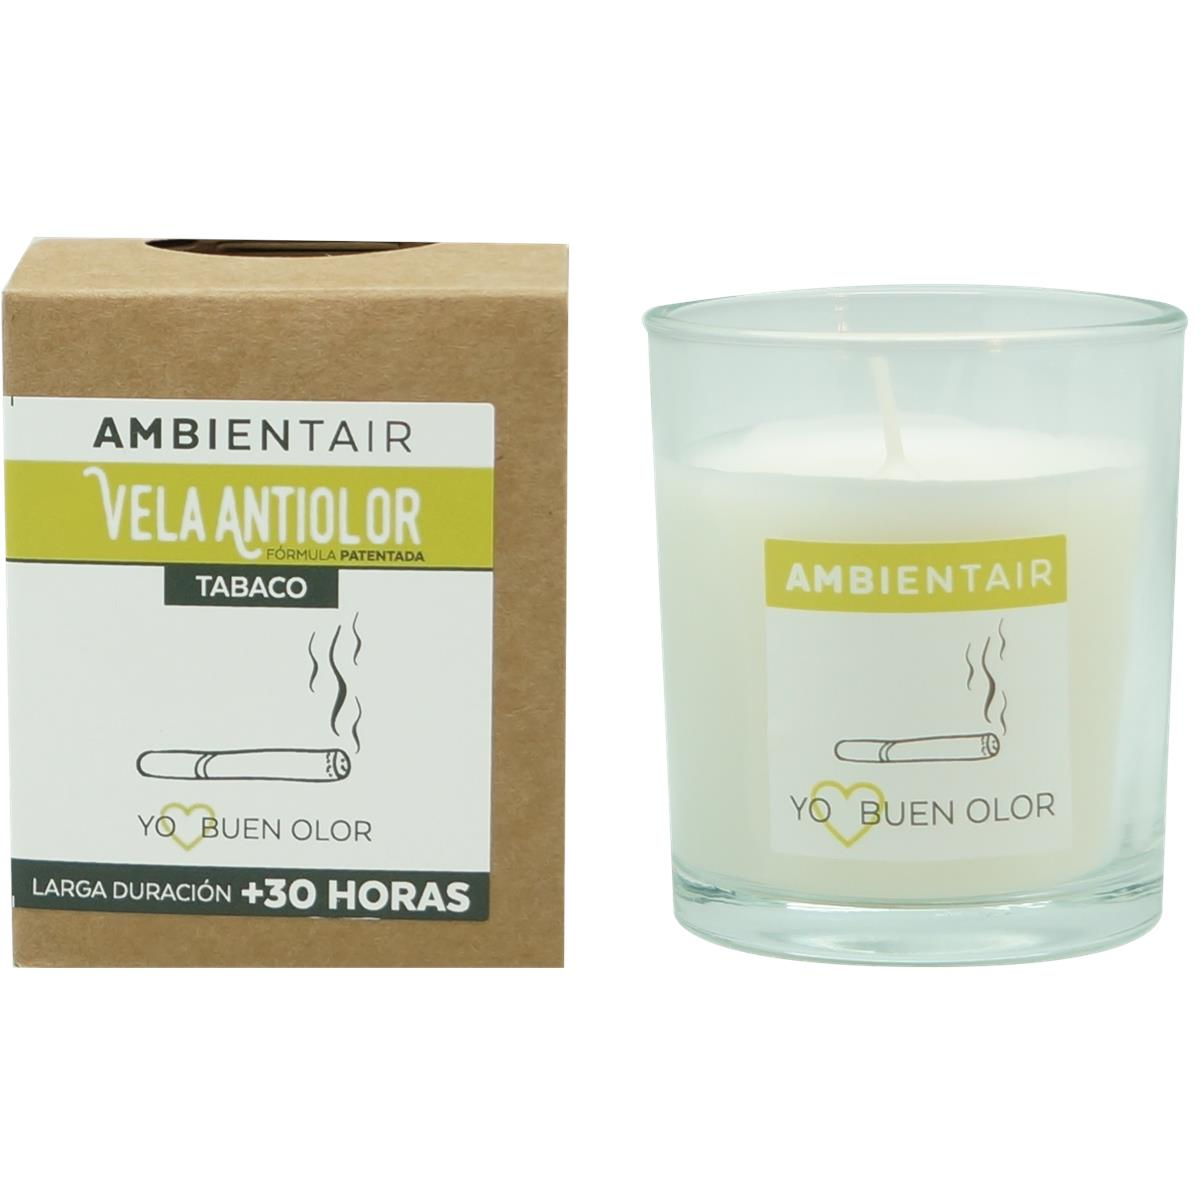 Ambientair · Vela aromática · Antiolor Baño